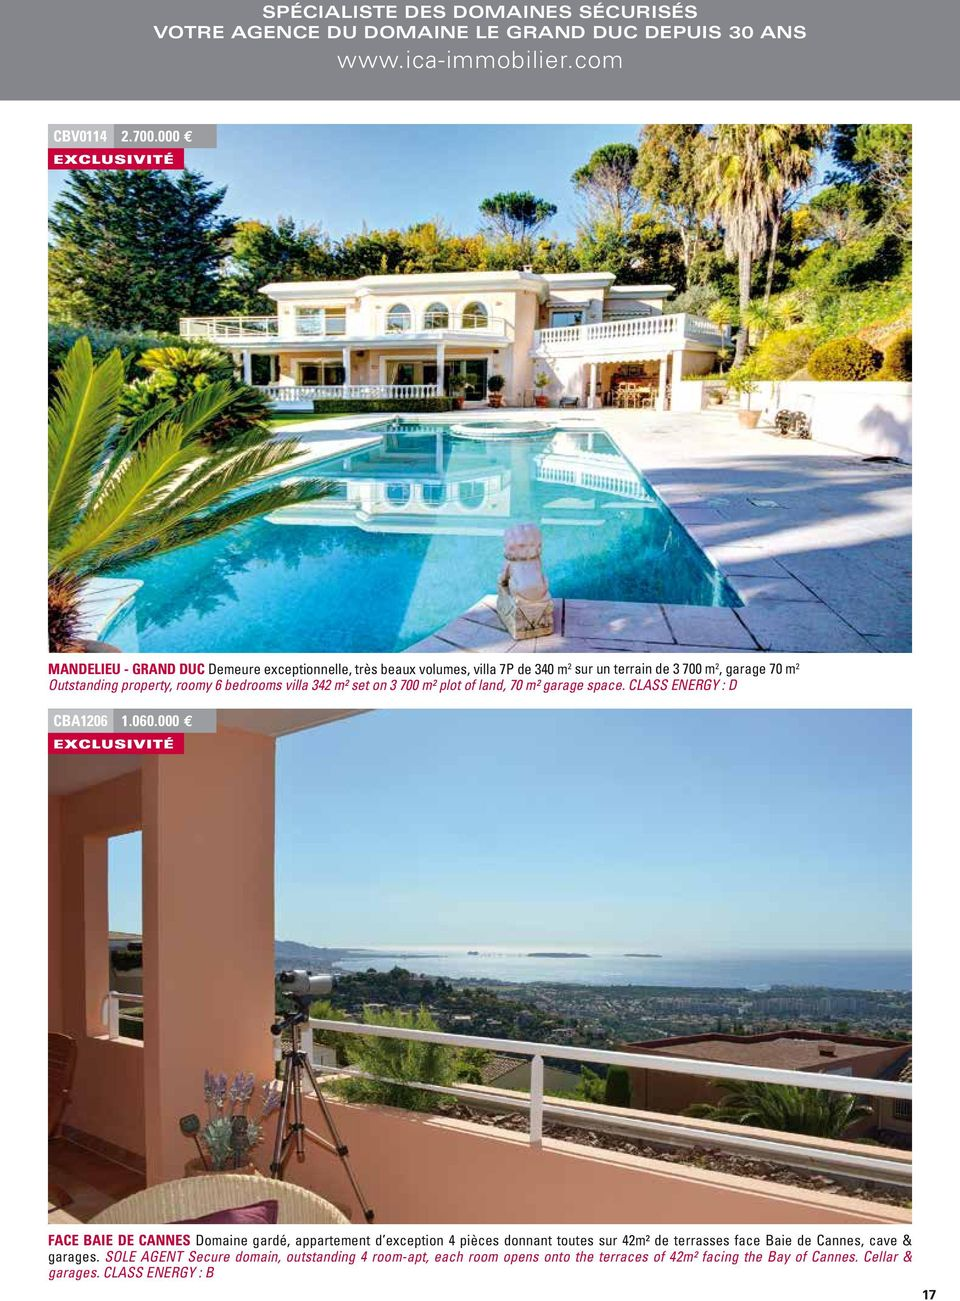 villa 342 m² set on 3 700 m² plot of land, 70 m² garage space. CLASS ENERGY : D CBA1206 1.060.